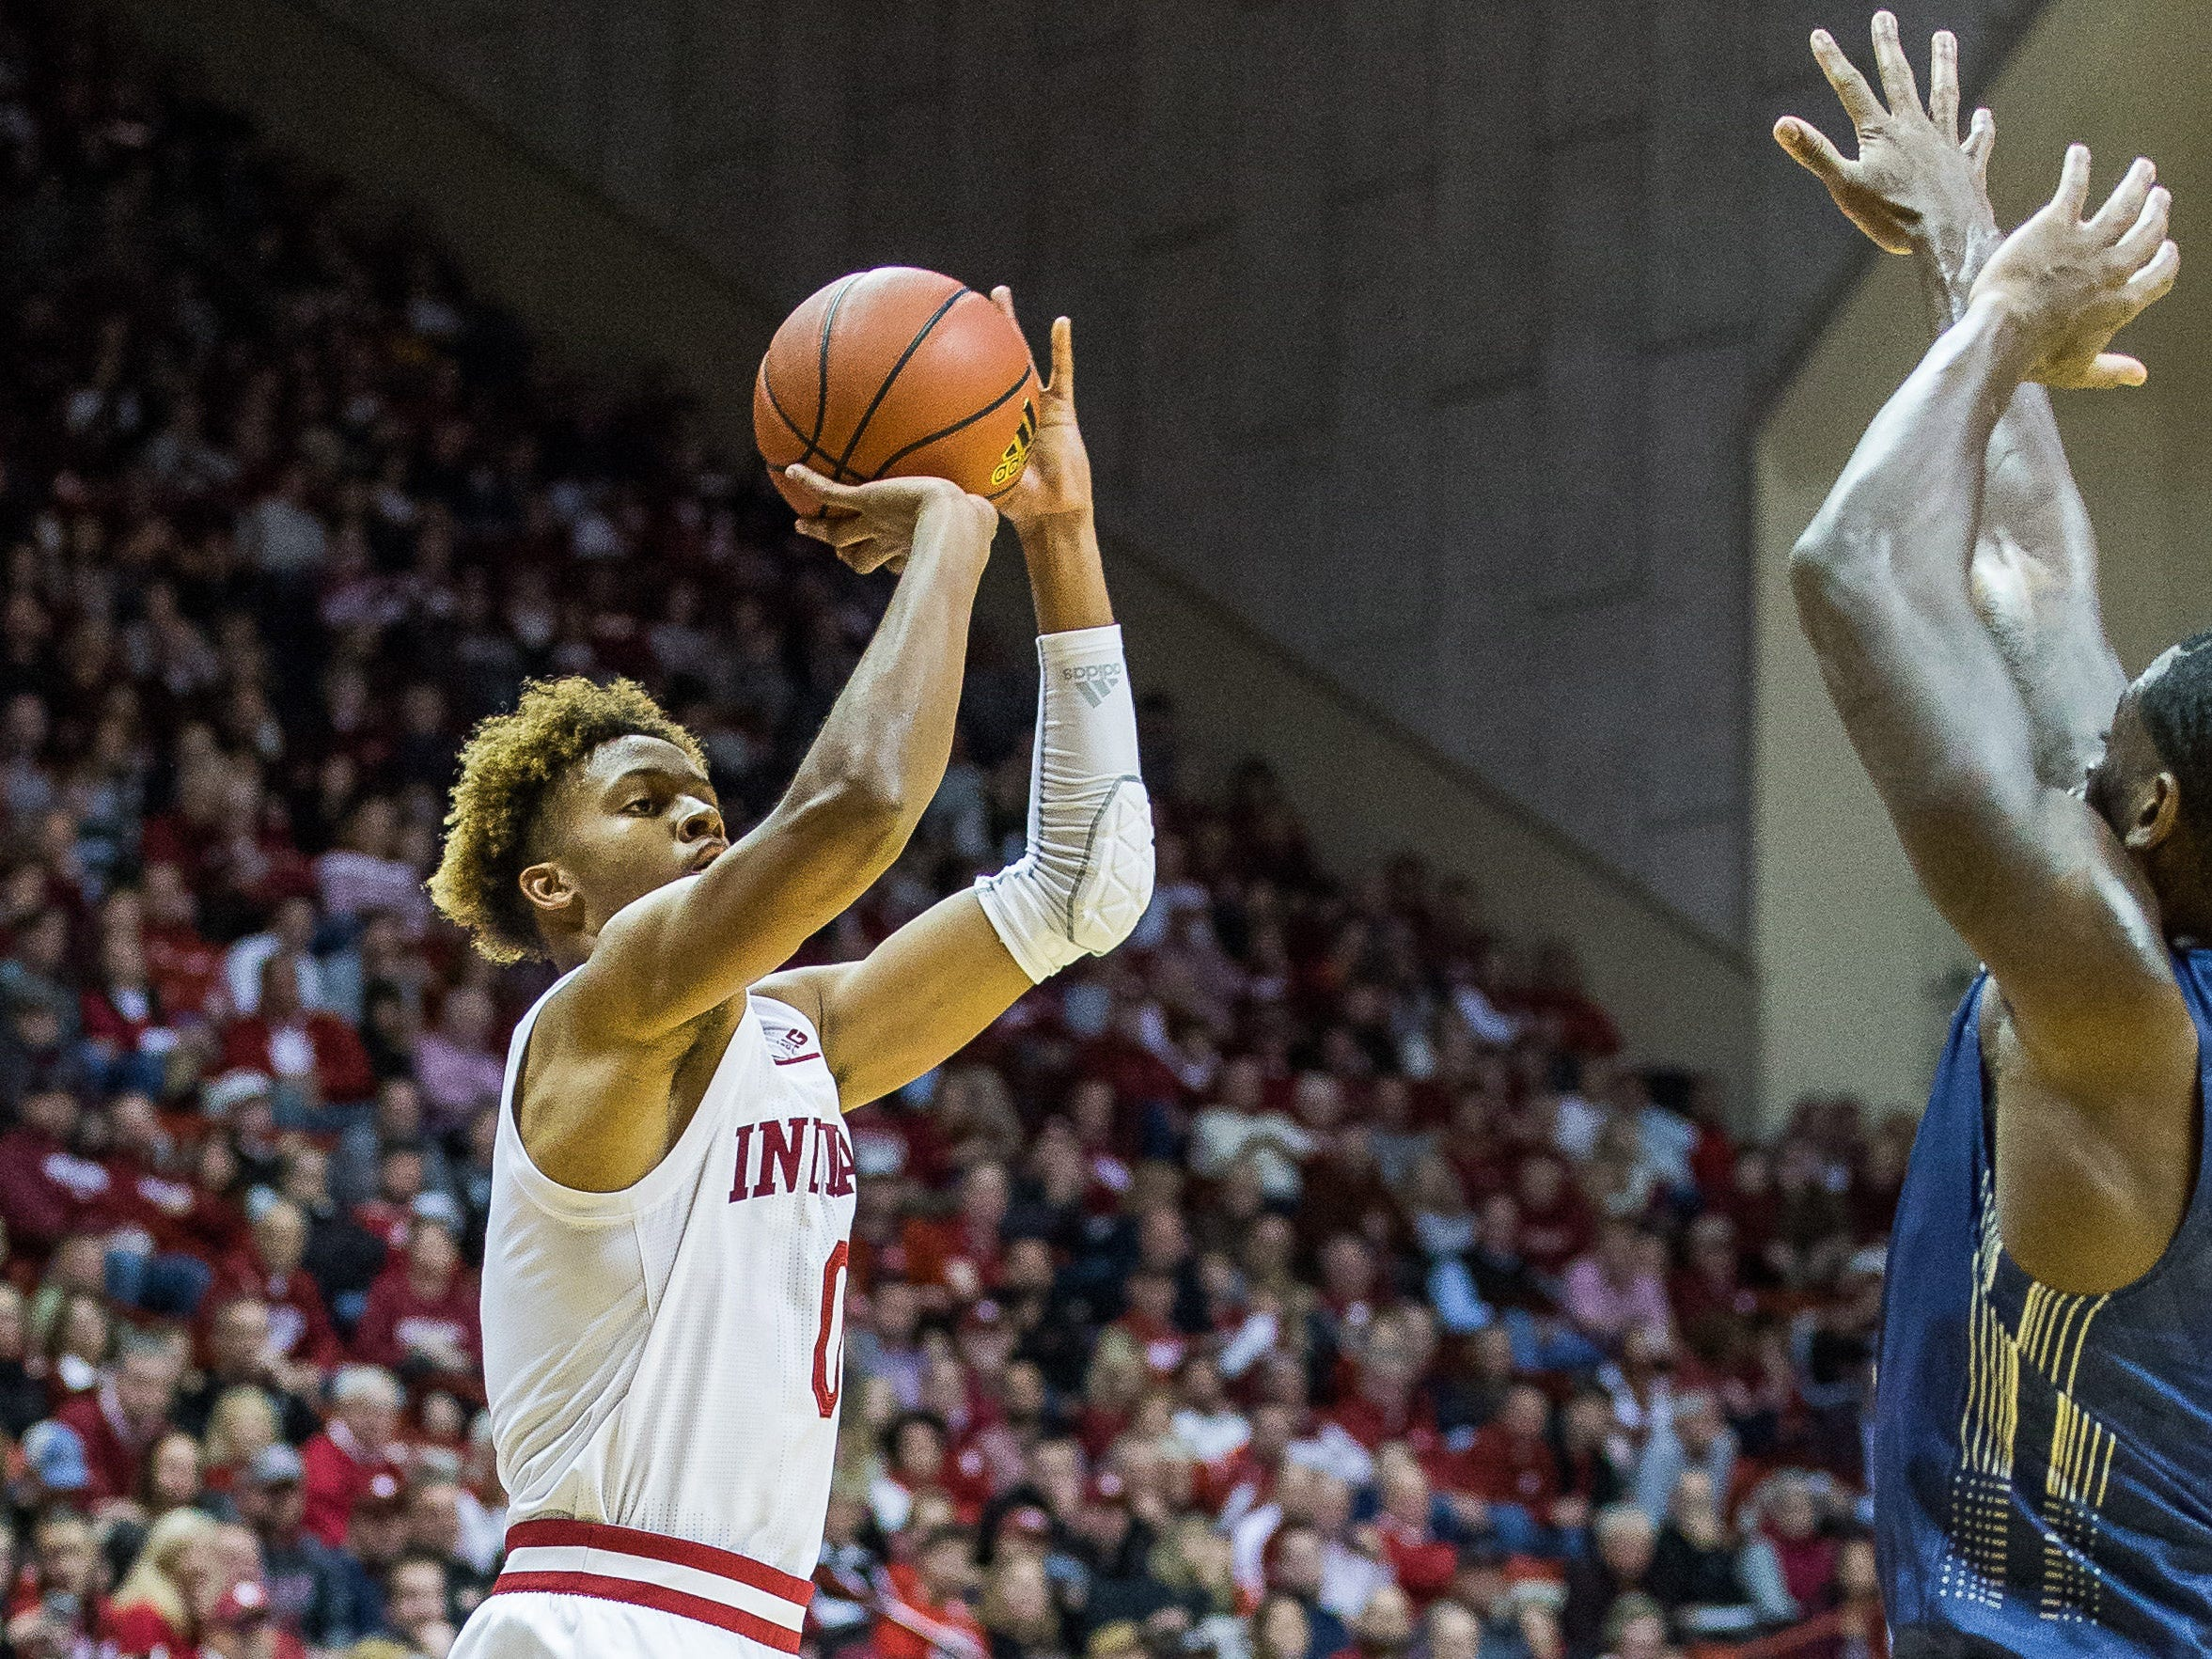 Indiana Hoosiers guard Romeo Langford (0) shoots the ball in the first half against the Montana State Bobcats at Assembly Hall.